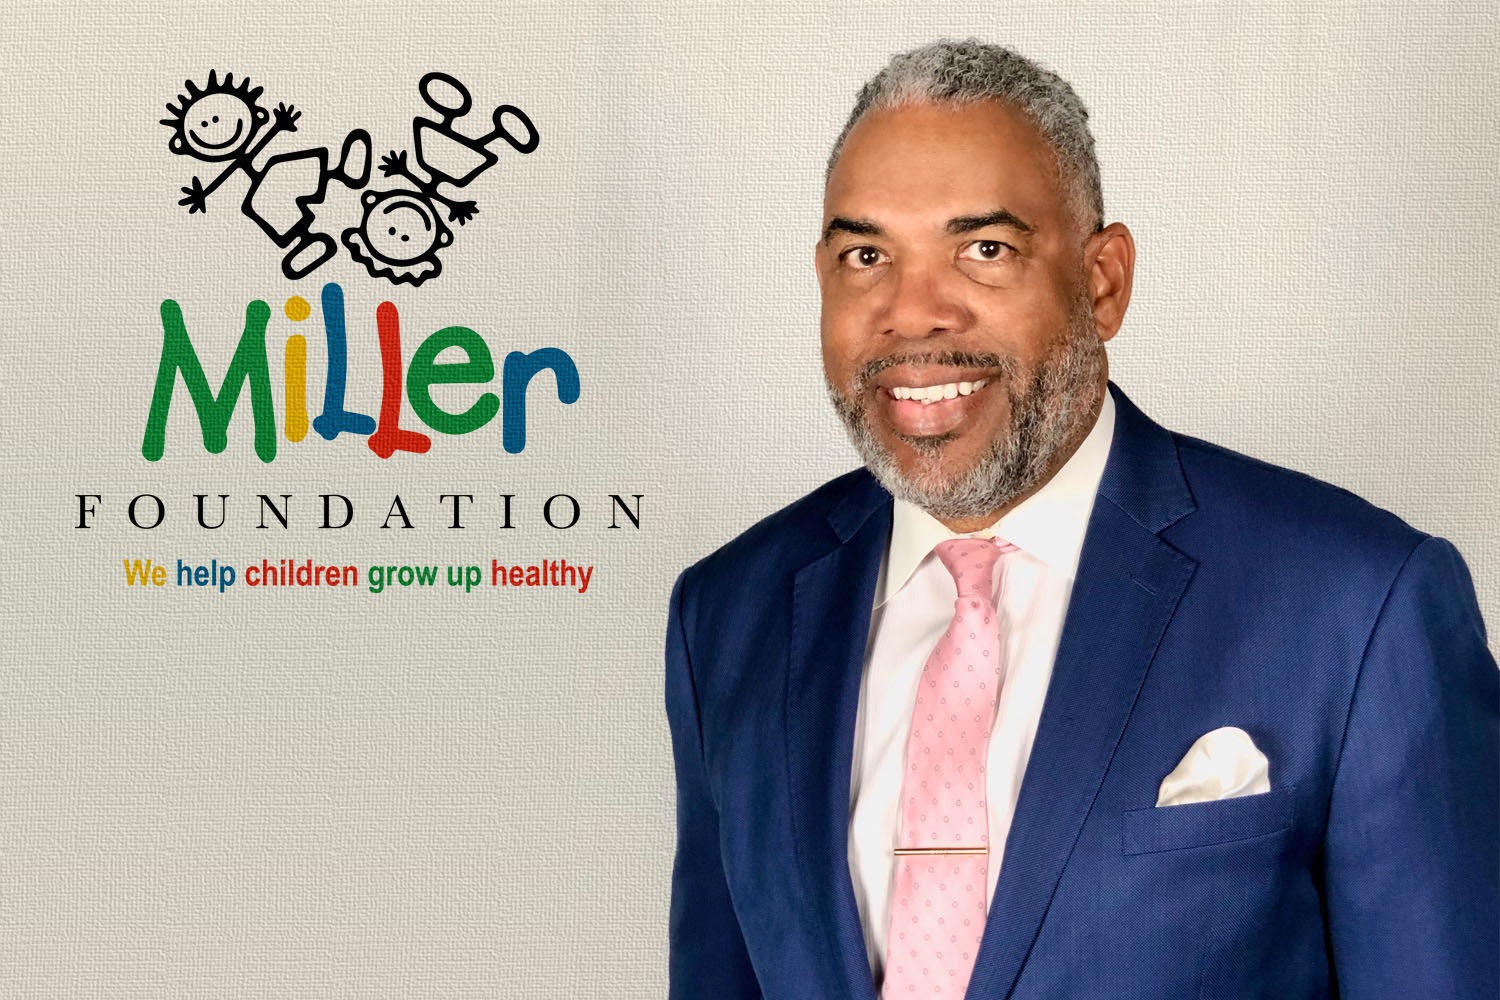 Miller Foundation New President | Darik Simpson